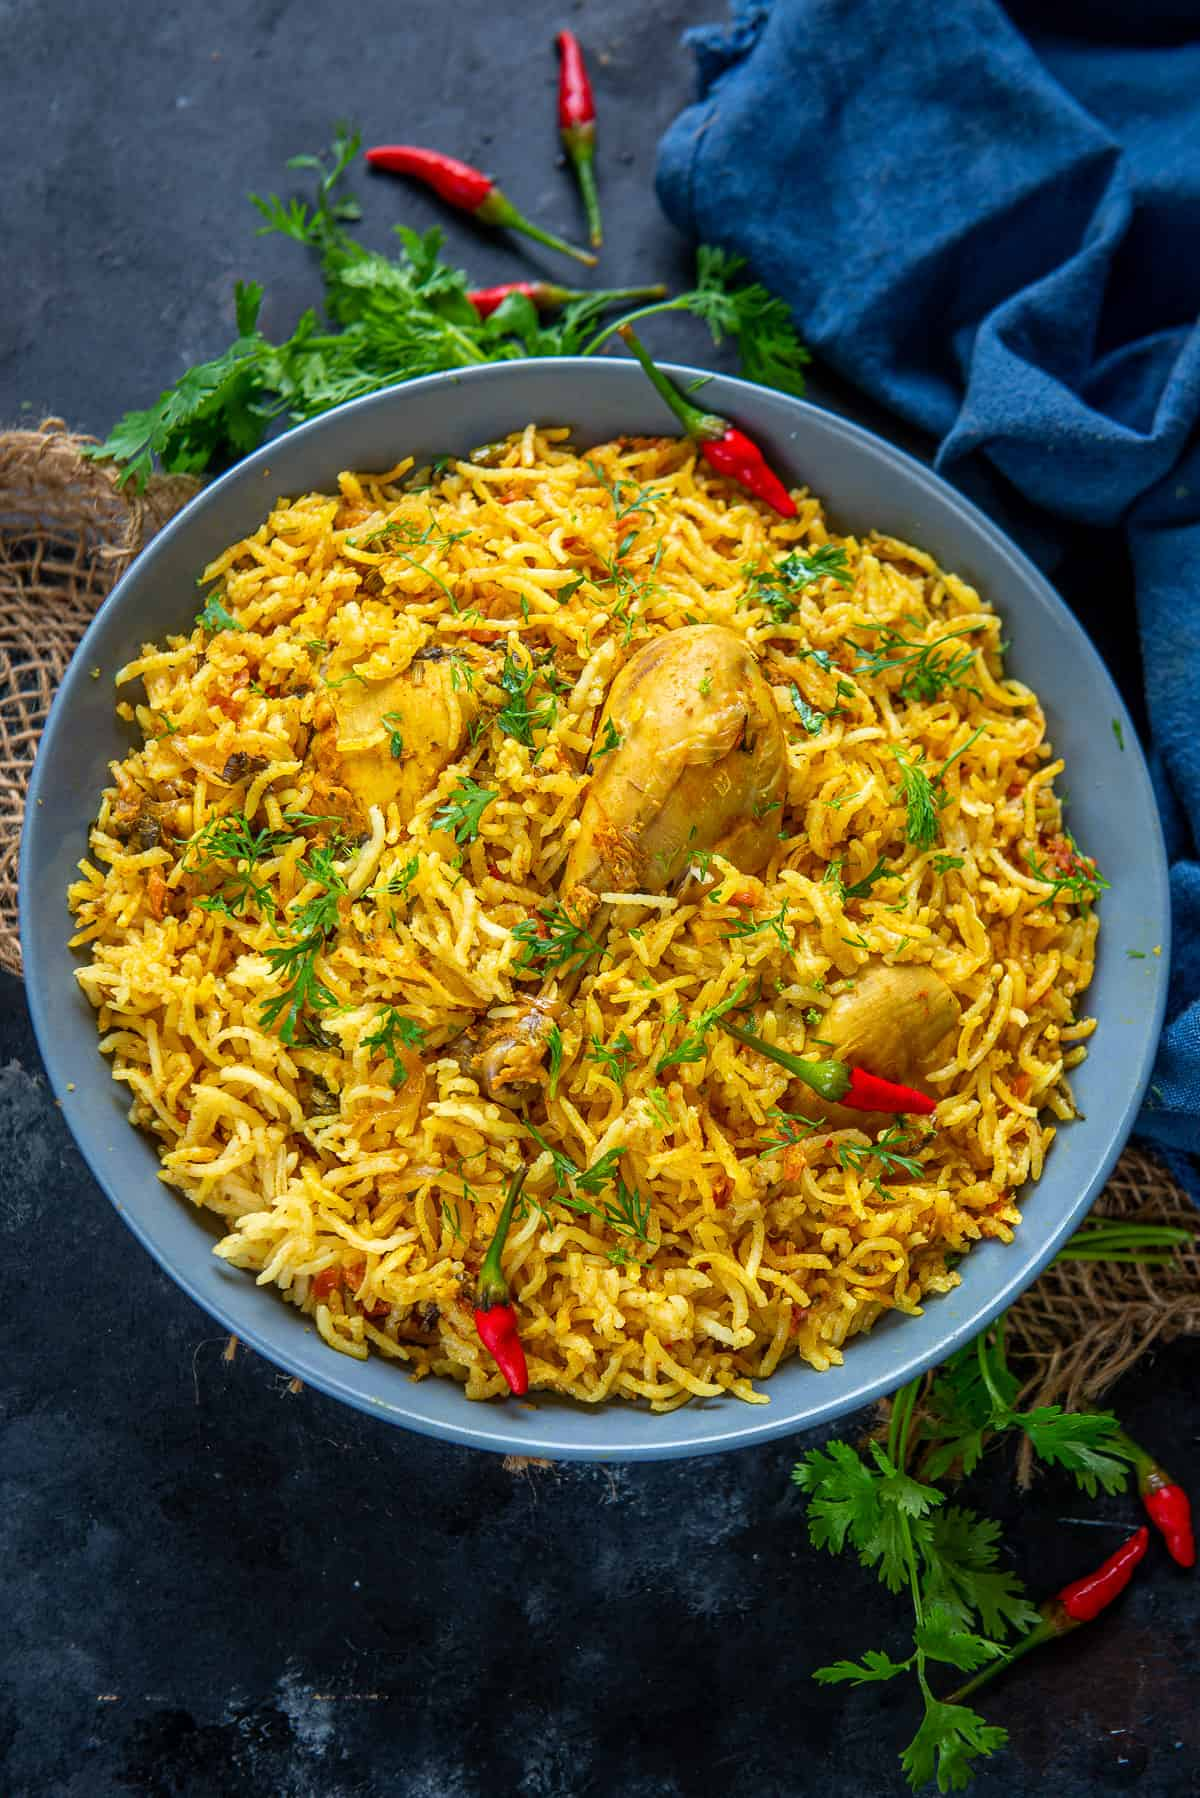 Chicken pulao served in a bowl.